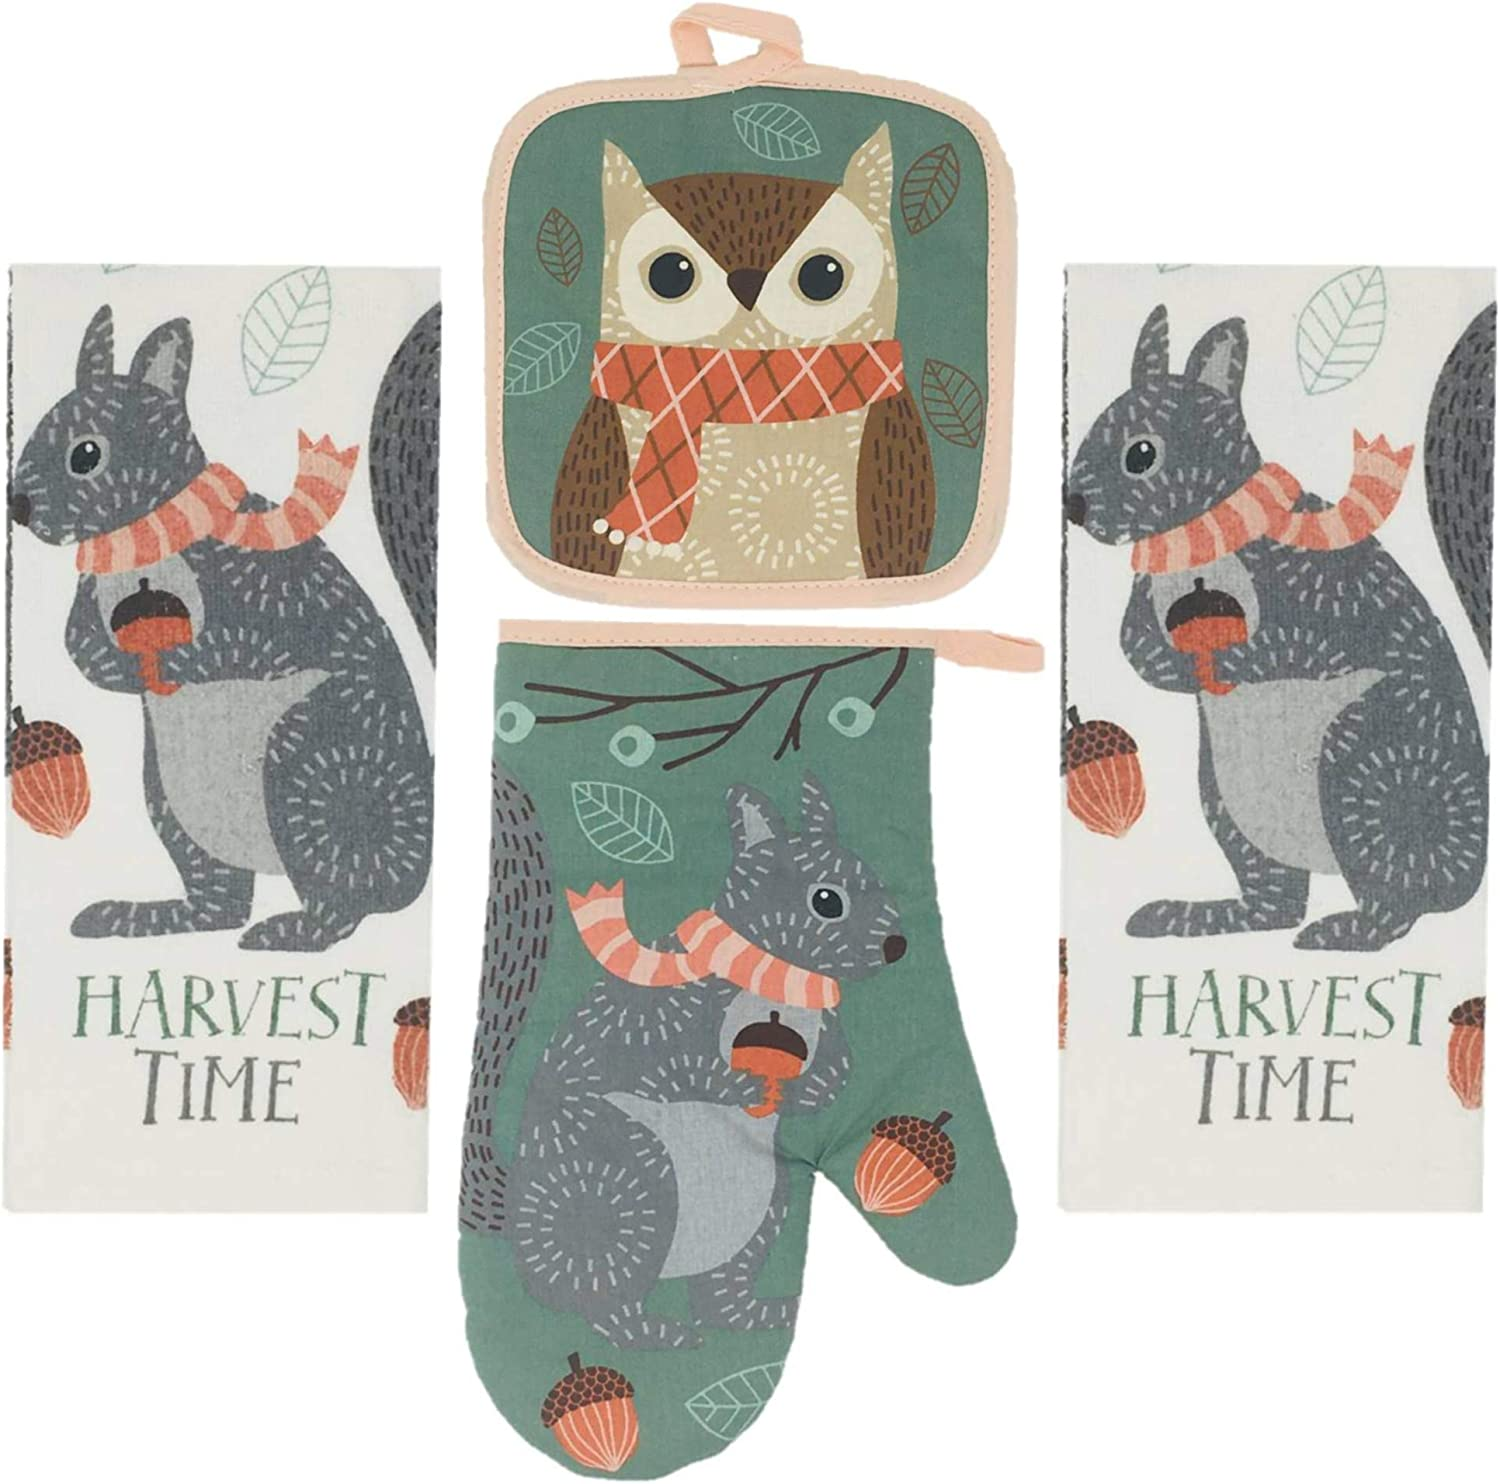 Way to Celebrate Fall Kitchen Towels, Oven Mitt, and Potholder 4 Piece Bundle Set (Harvest Owl)